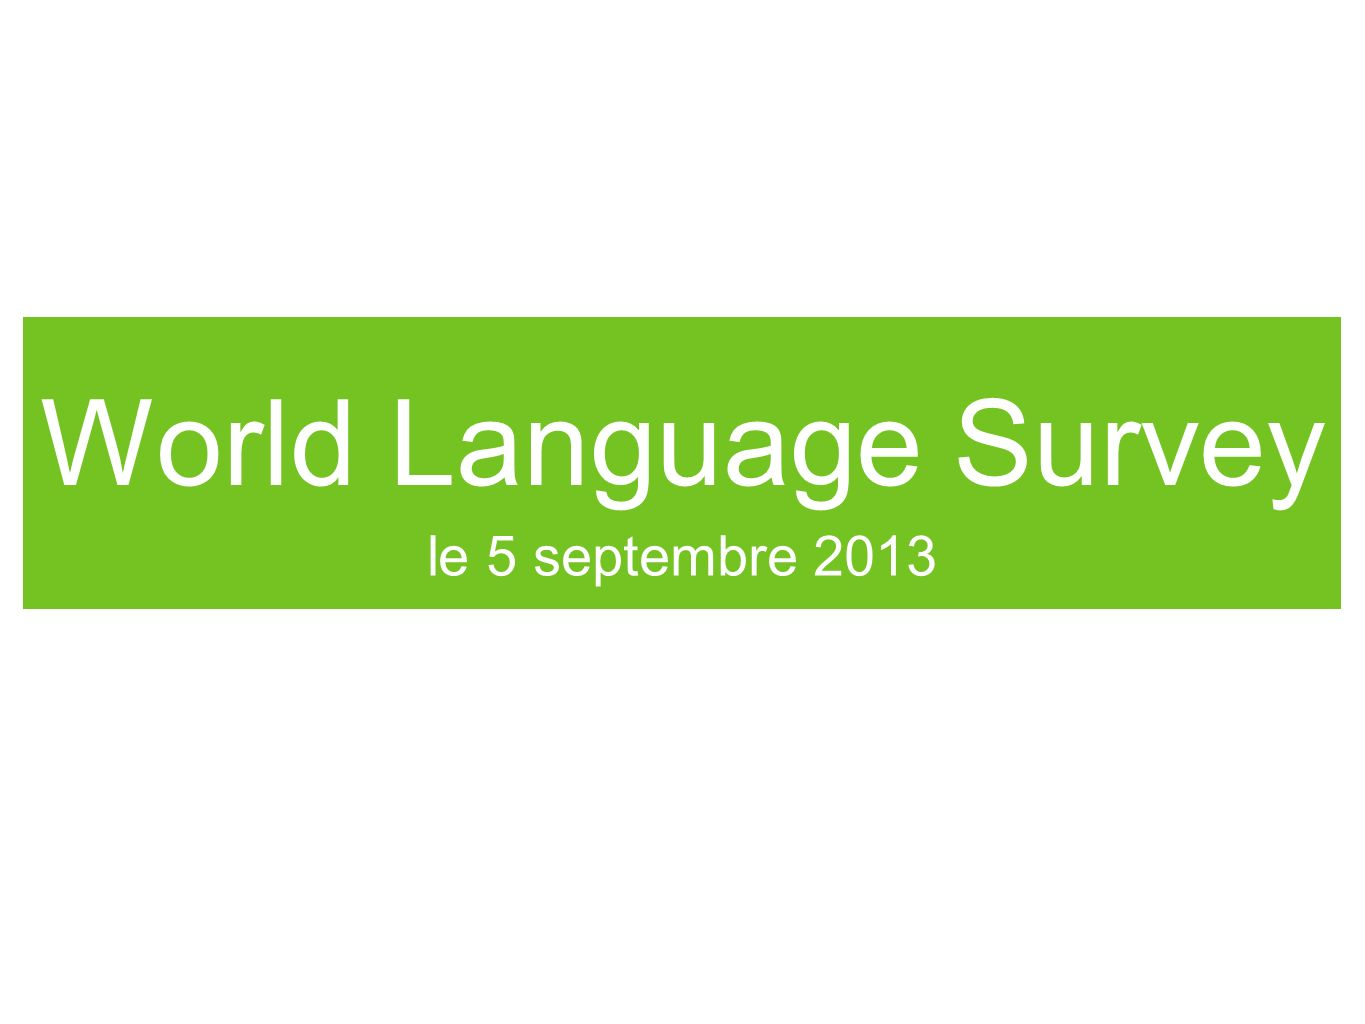 World Language Survey le 5 septembre 2013